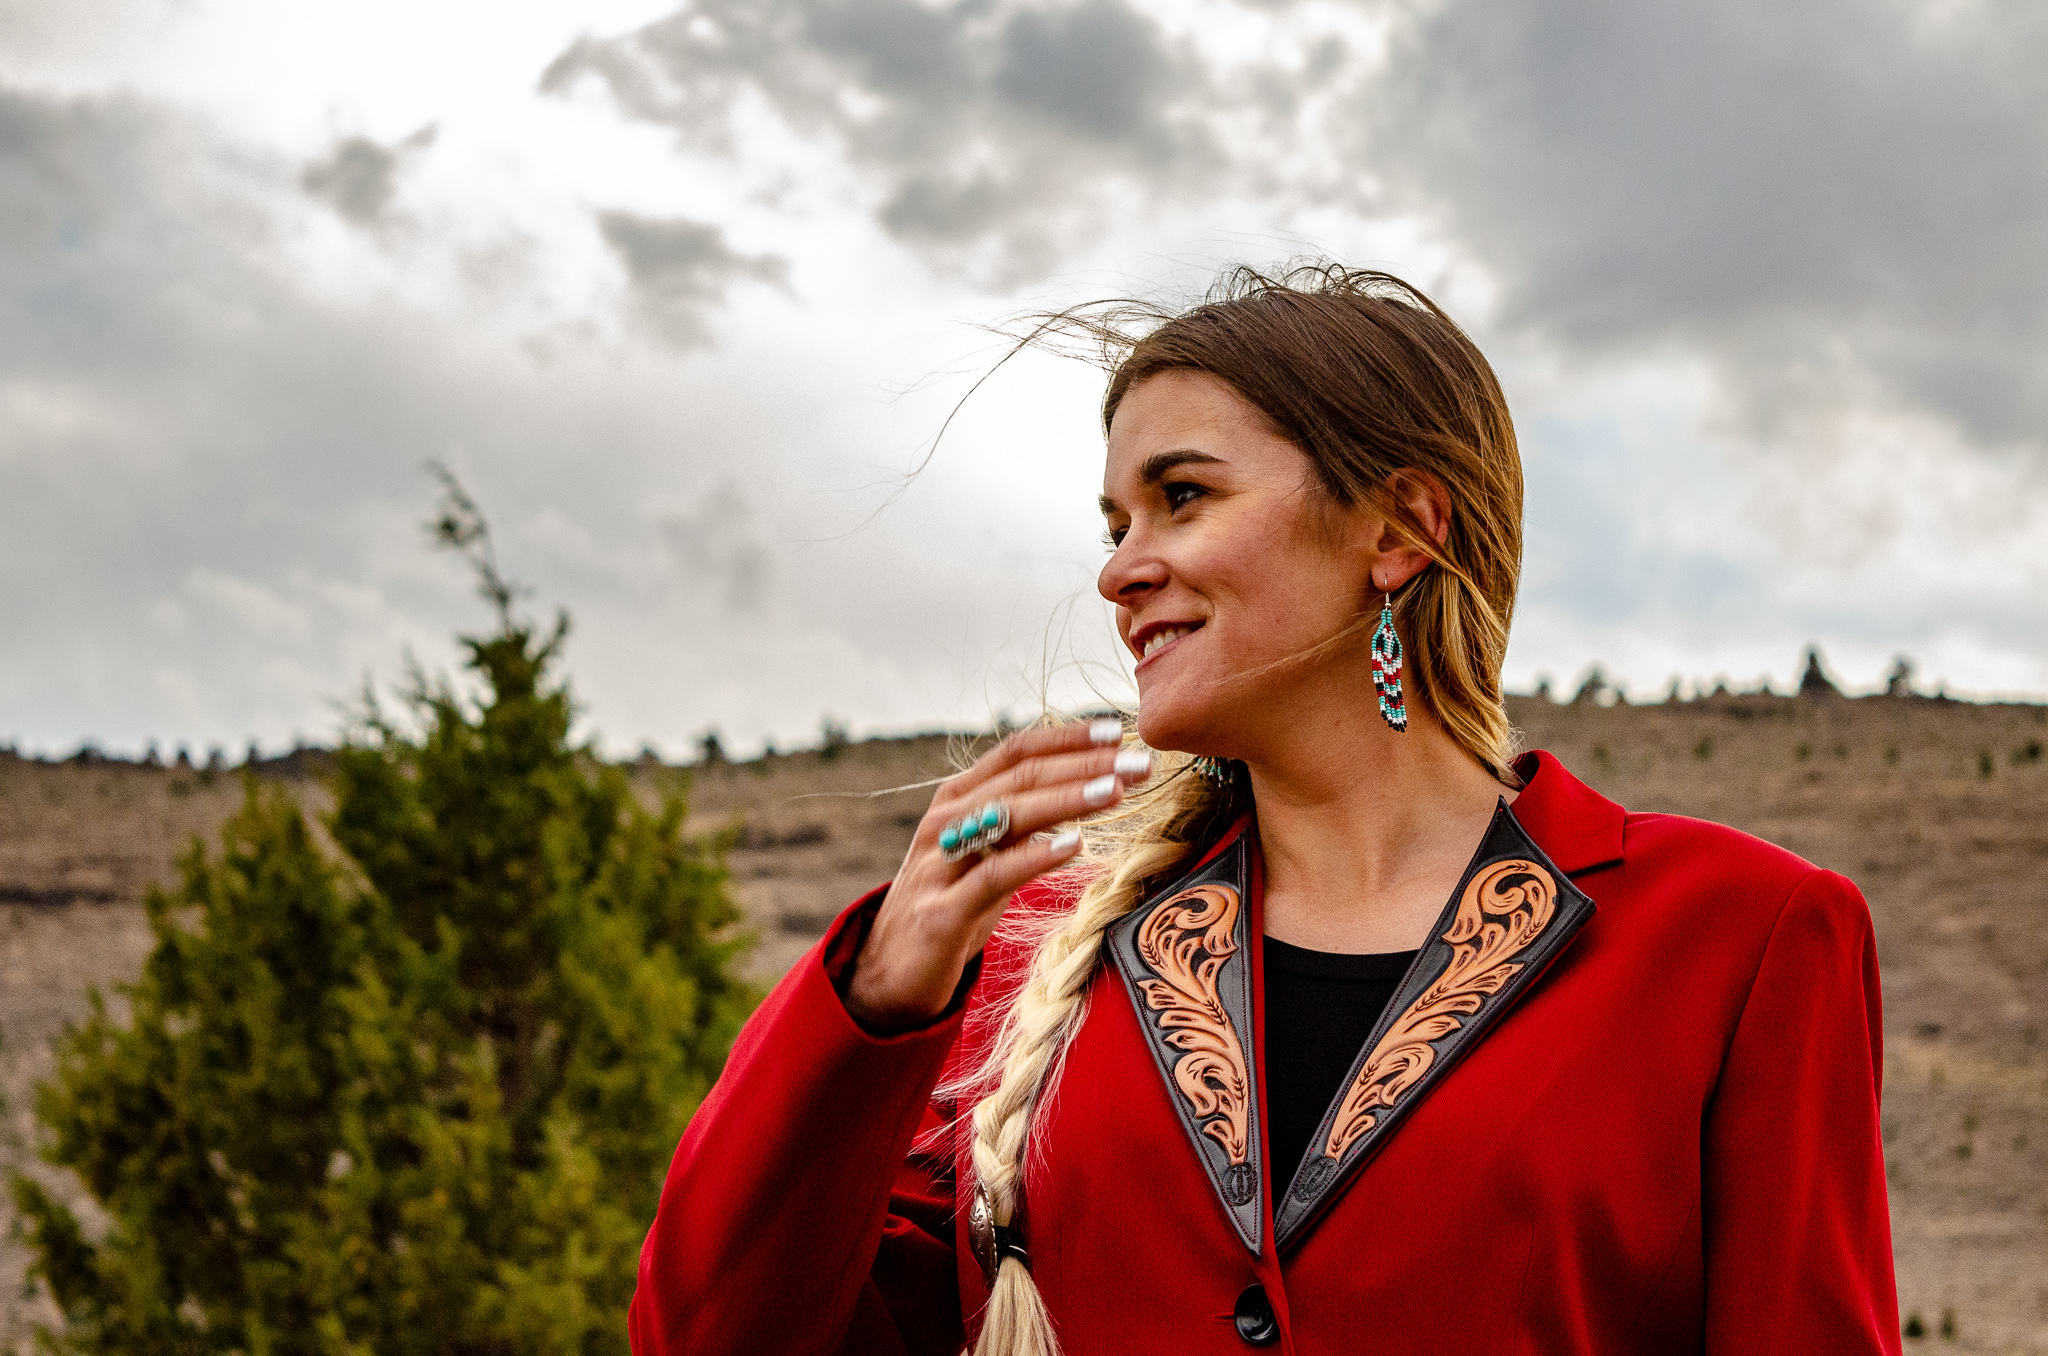 Tooled blazer, ring and hair concho by The Rustic Ranch. Beaded earrings by Flyin' A Custom Leather and Beading. Model is Morgan Kromm. Photography is by Jessica Hedges, Branded in Ink.